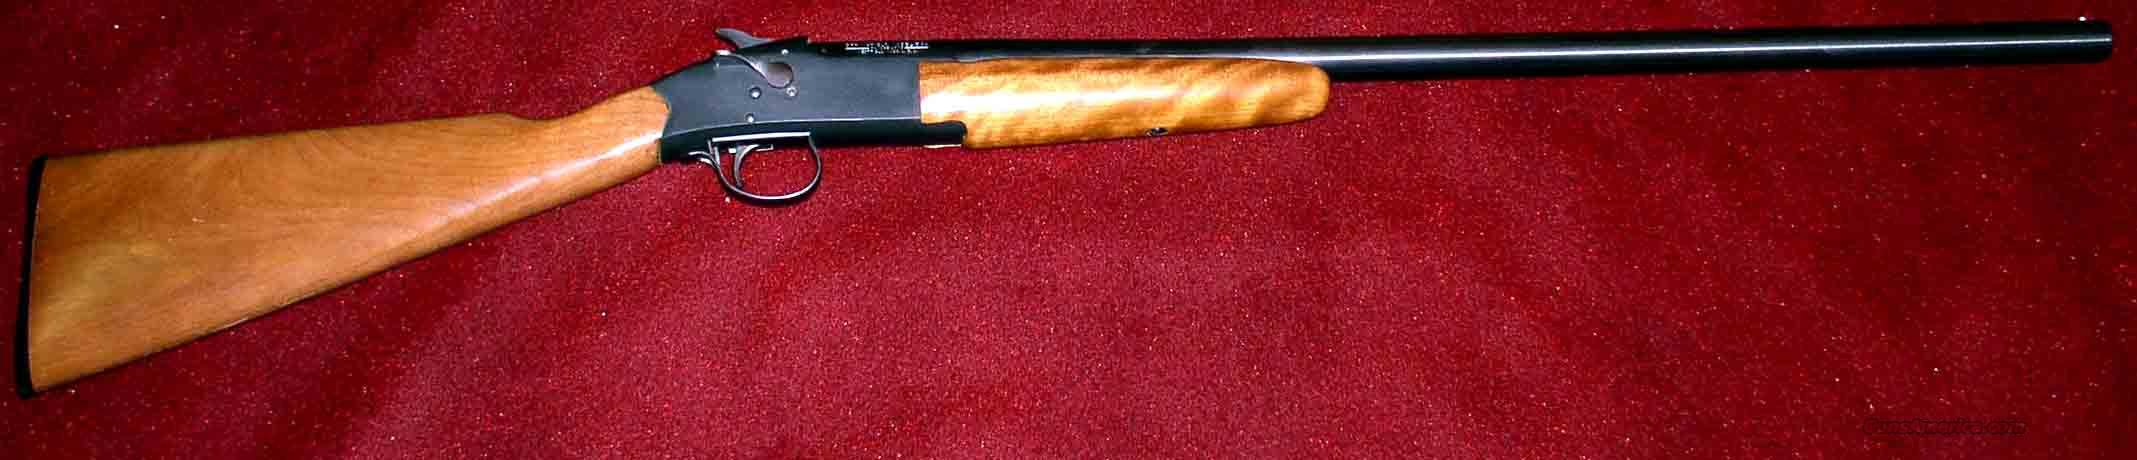 SPRINGFIELD 944 SAVAGE ARMS  Guns > Shotguns > Savage Shotguns